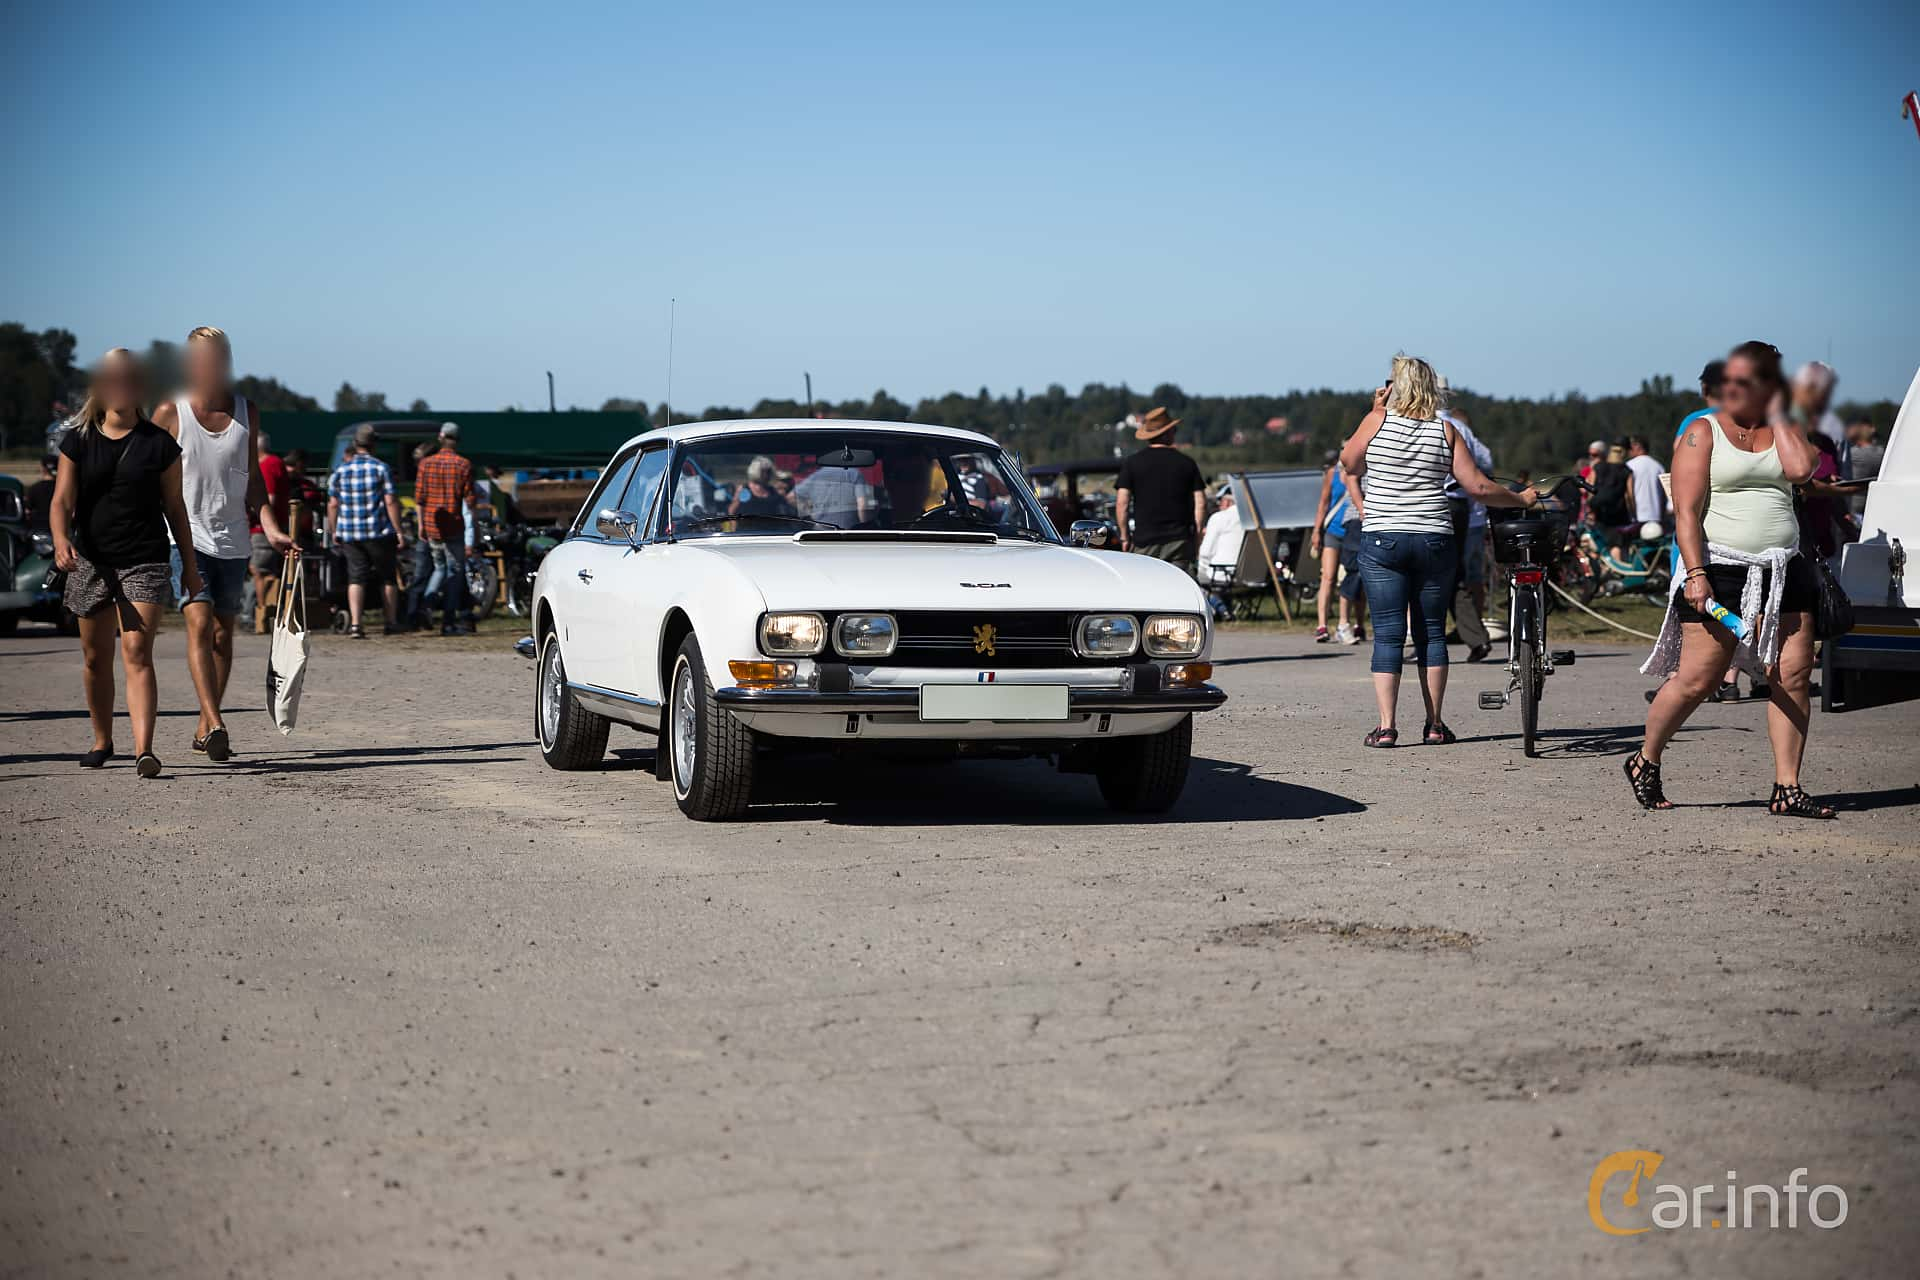 Peugeot 504 Coupé 2.0 Manual, 102hp, 1973 at Eskilstunas Veterandag 2015